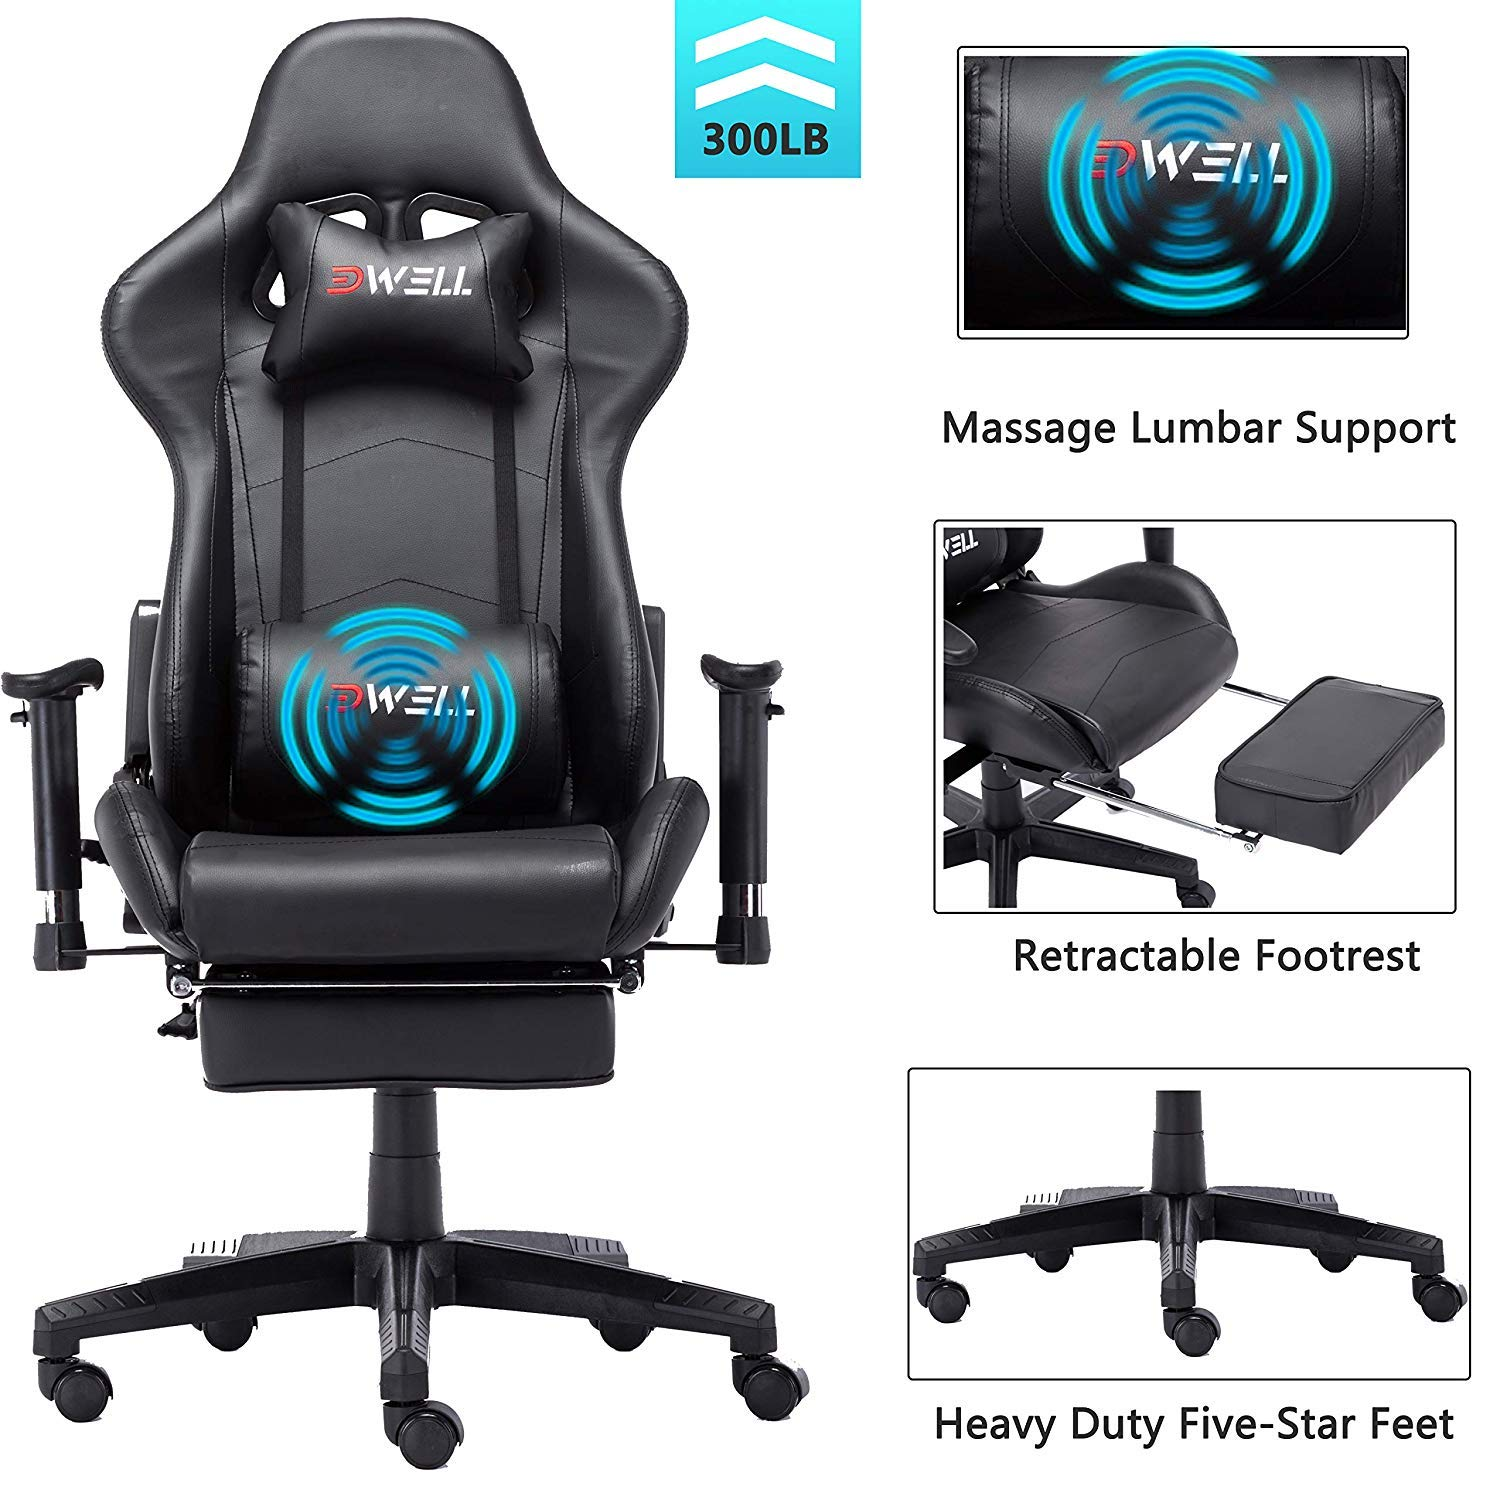 EDWELL Ergonomic Gaming Chair with Headrest and Lumbar Massage Support,Racing Style PC Computer Chair Height Adjustable Swivel with Retractable Footrest Executive Office Chair (Black) by EDWELL